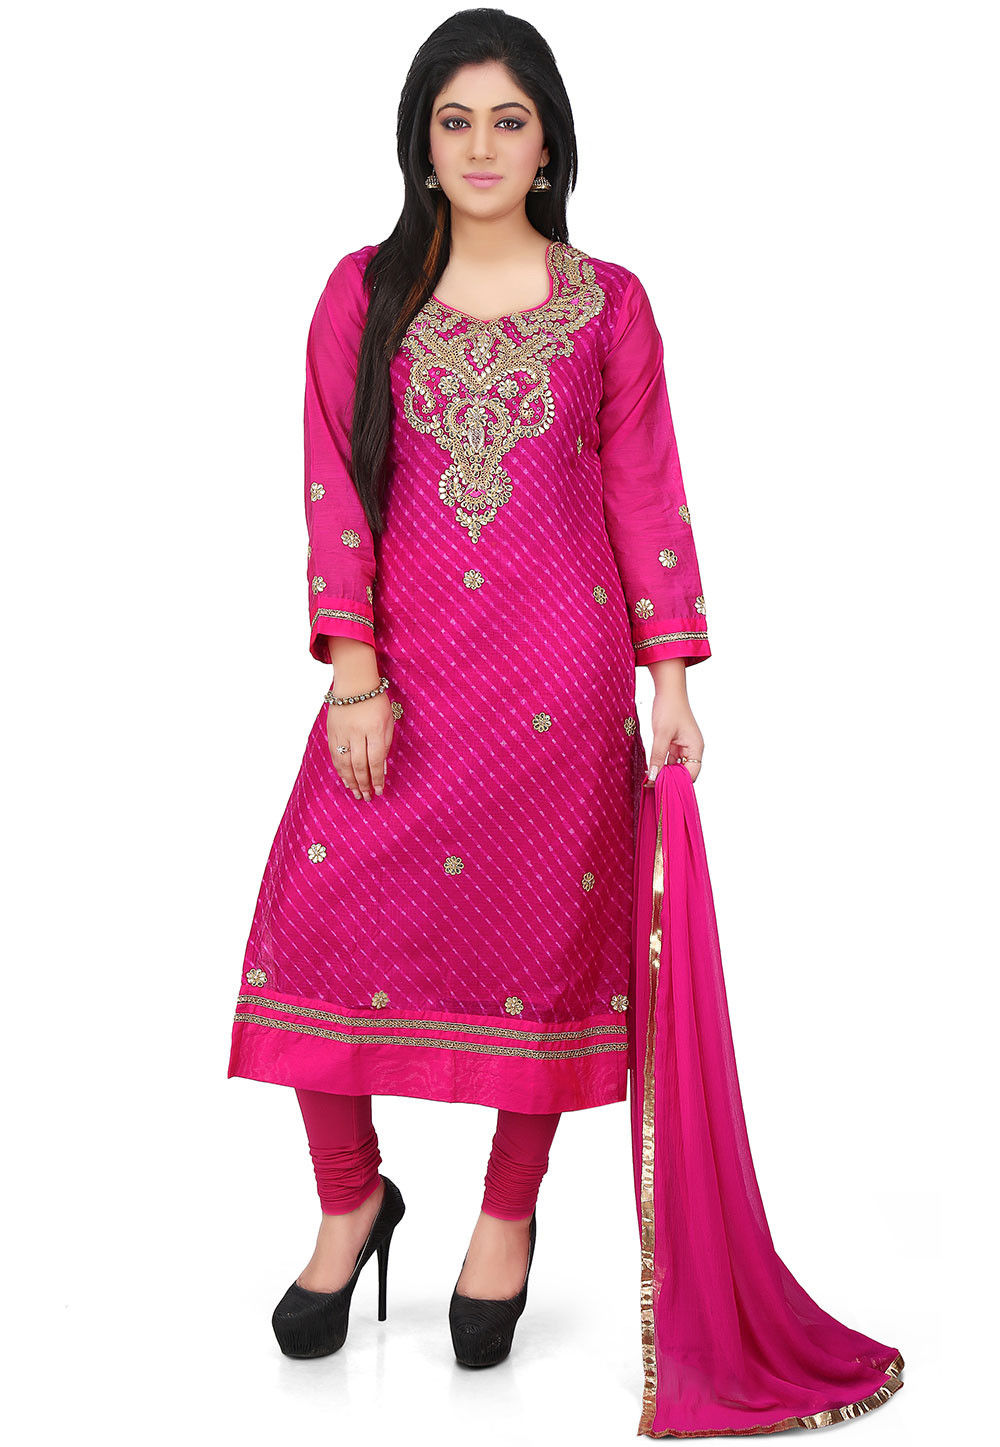 Leheriya Pure Kota Silk Straight Cut Suit in Fuchsia